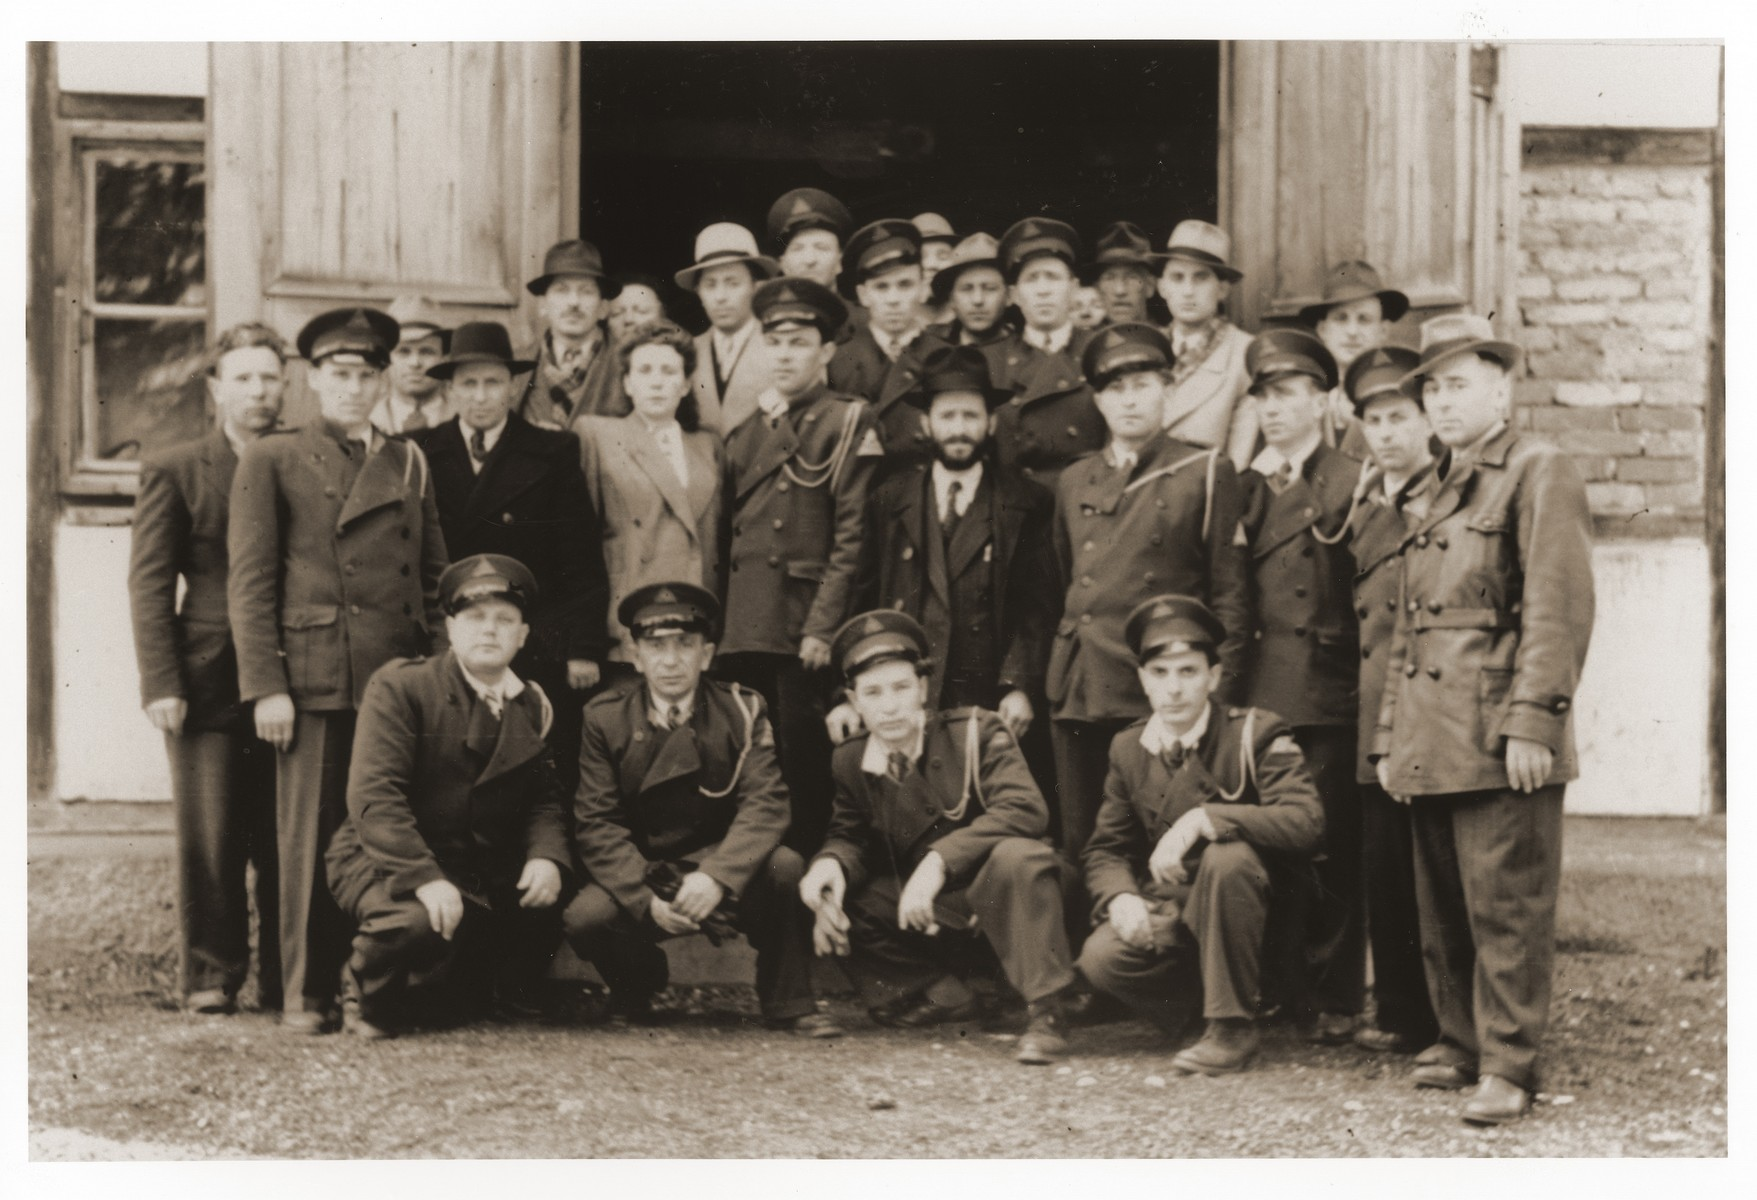 Group portrait of Jewish DP police and others from the Lechfeld displaced persons camp at a memorial ceremony in Dachau.